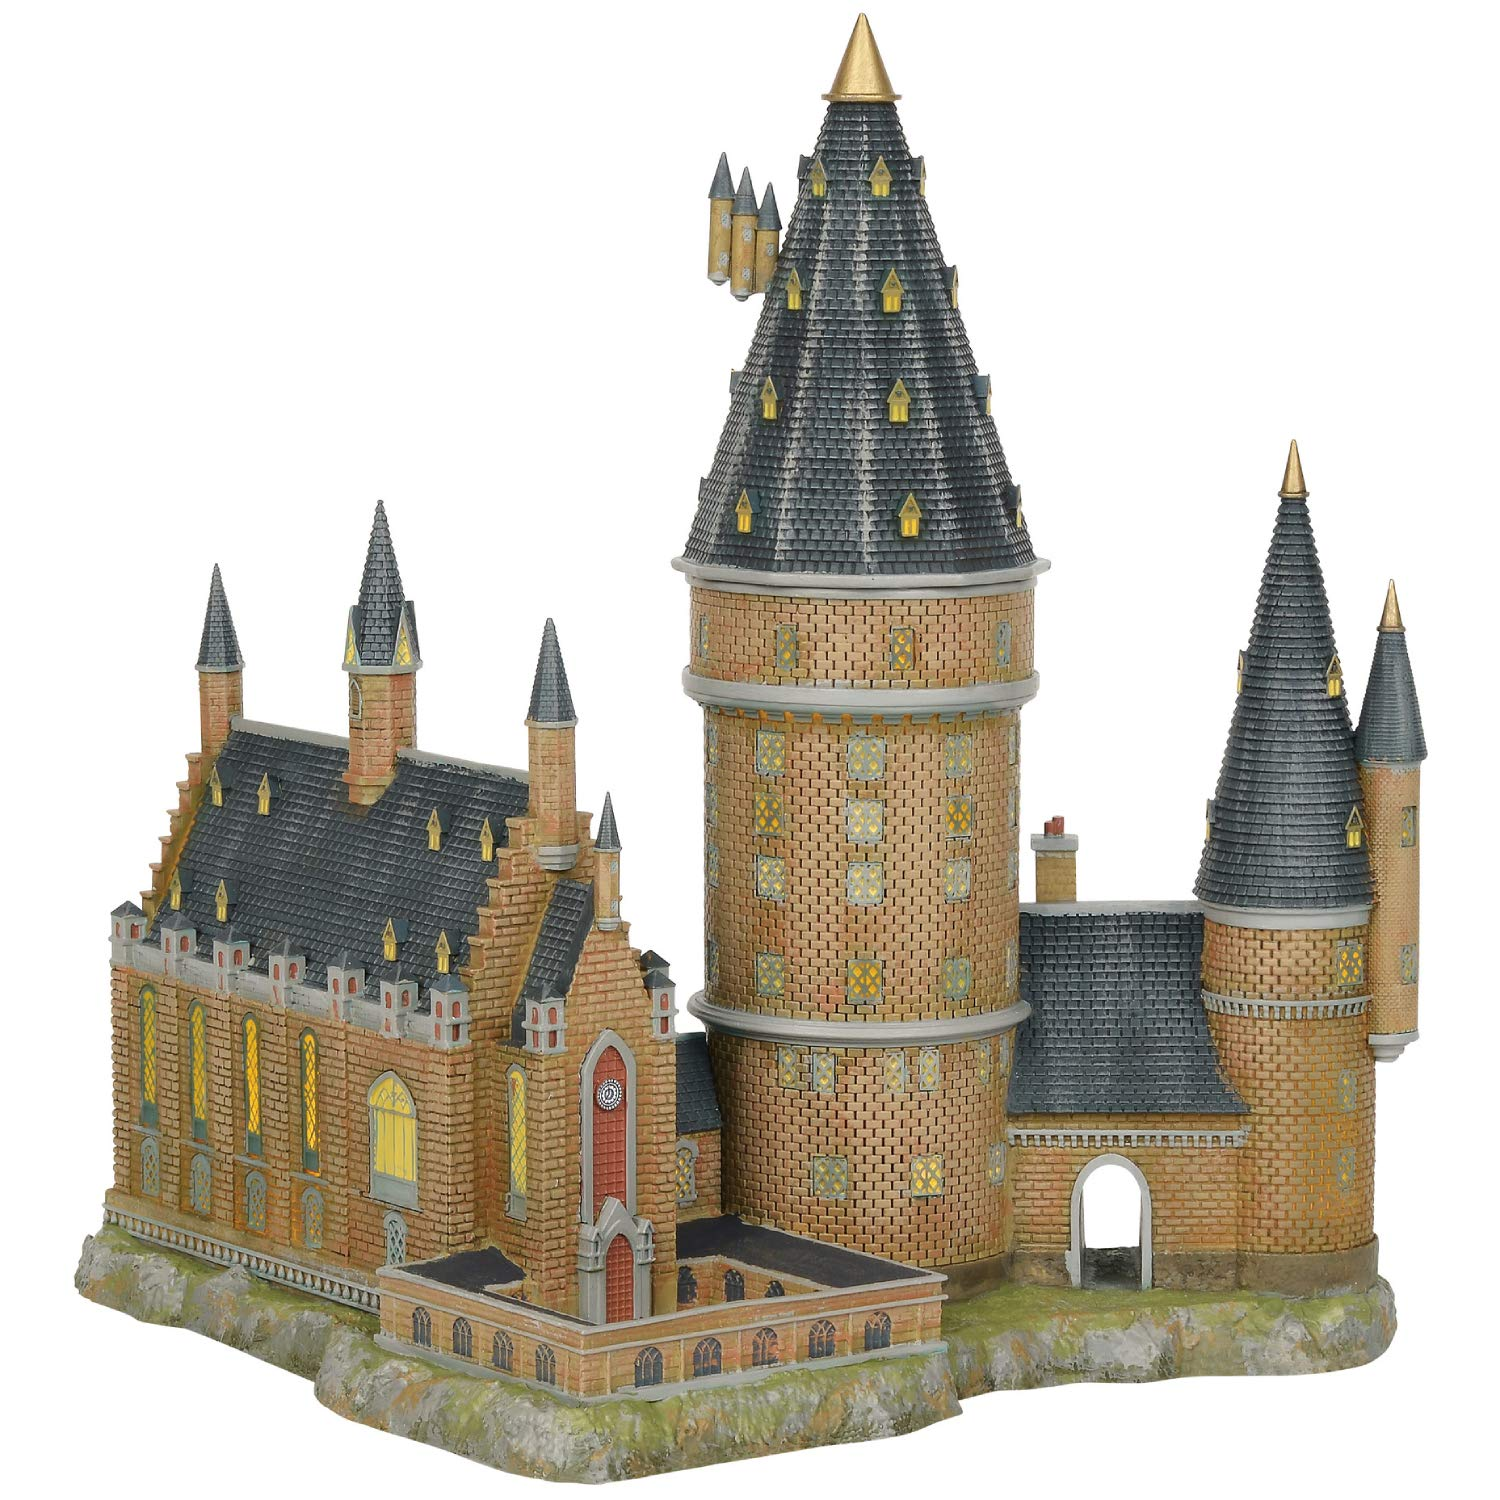 Department56 Harry Potter Village Hogwarts Hall and Tower Lit Building, 13.07'', Multicolor by Department56